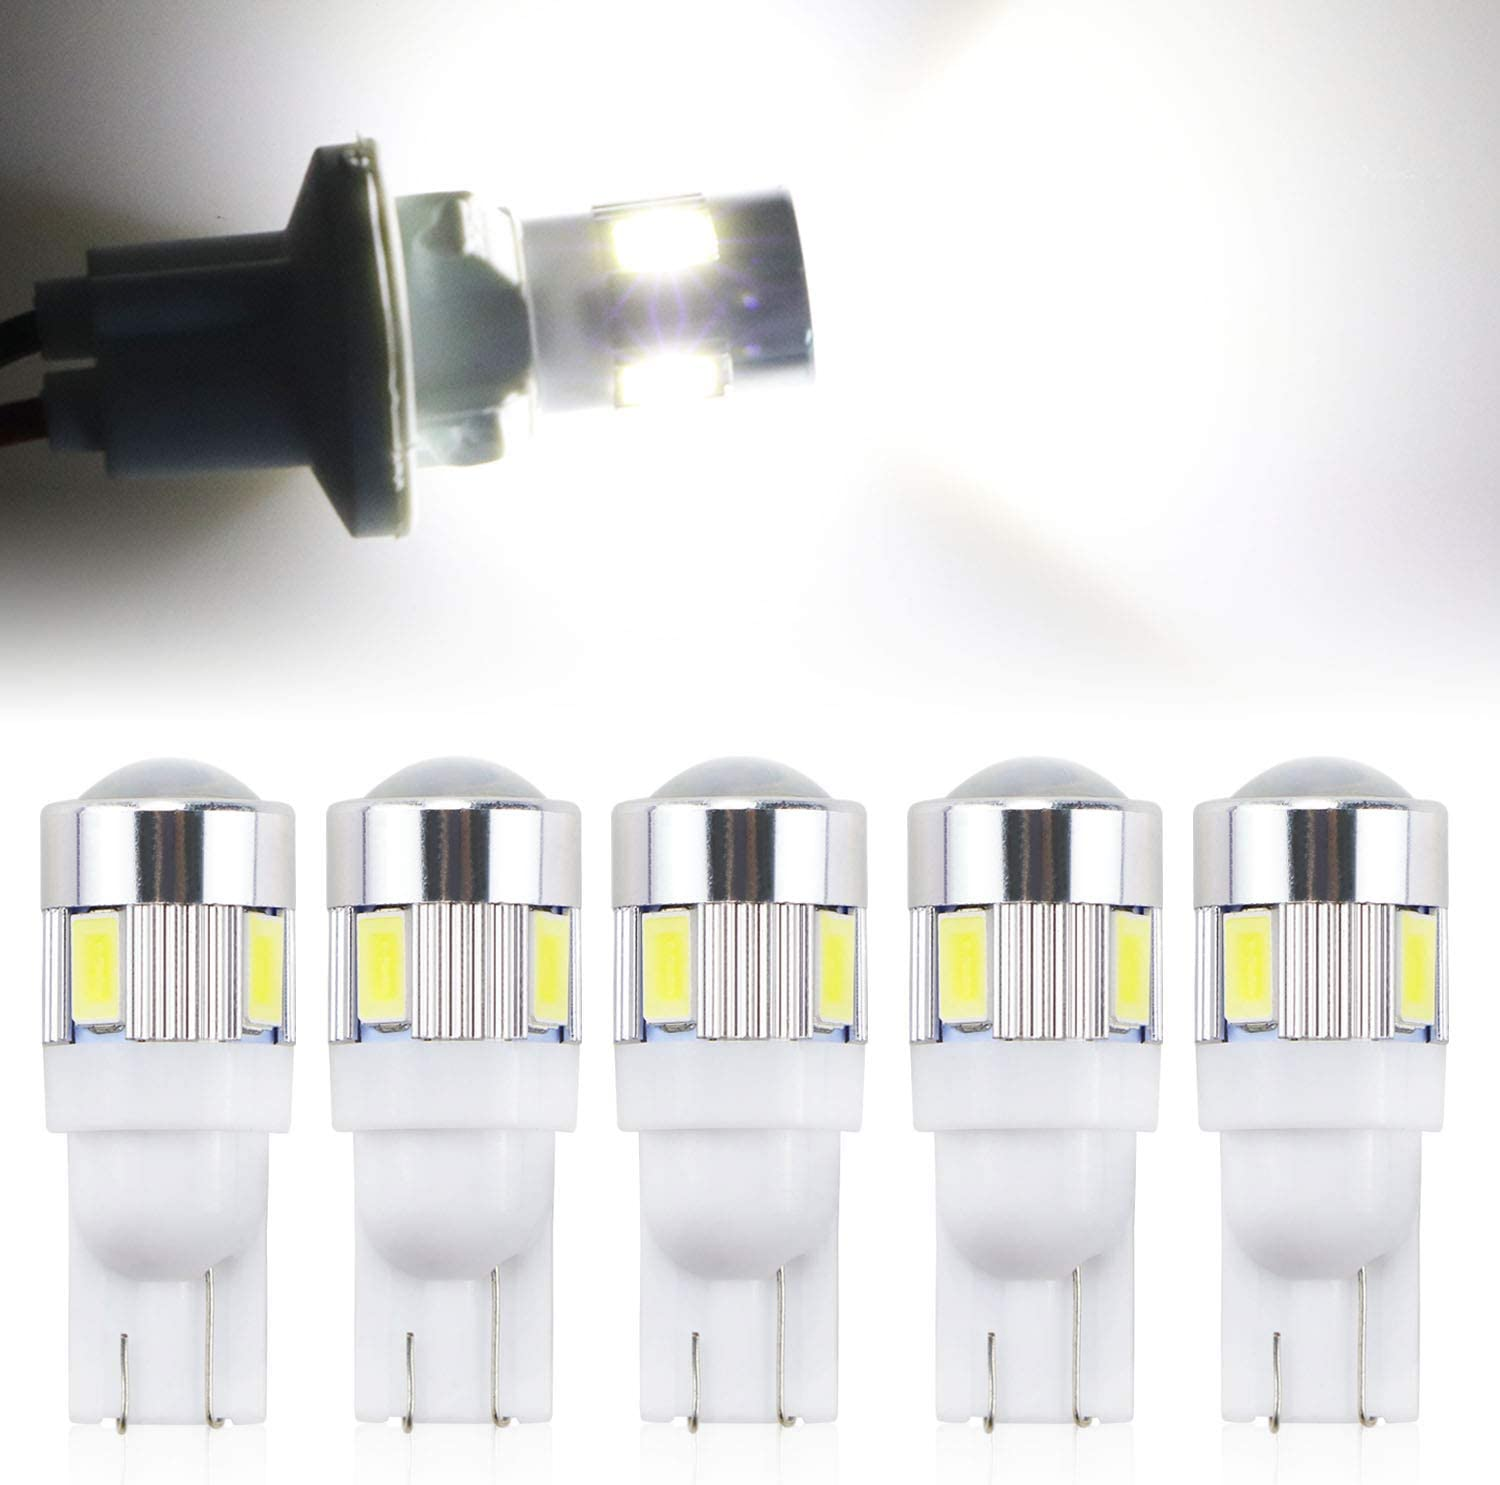 T10 194 168 LED Bulbs Xenon White 6000k for Car Interior Dome Map Door Courtesy Cab Maker License Plate Lights W5W 2825 Pack of 5